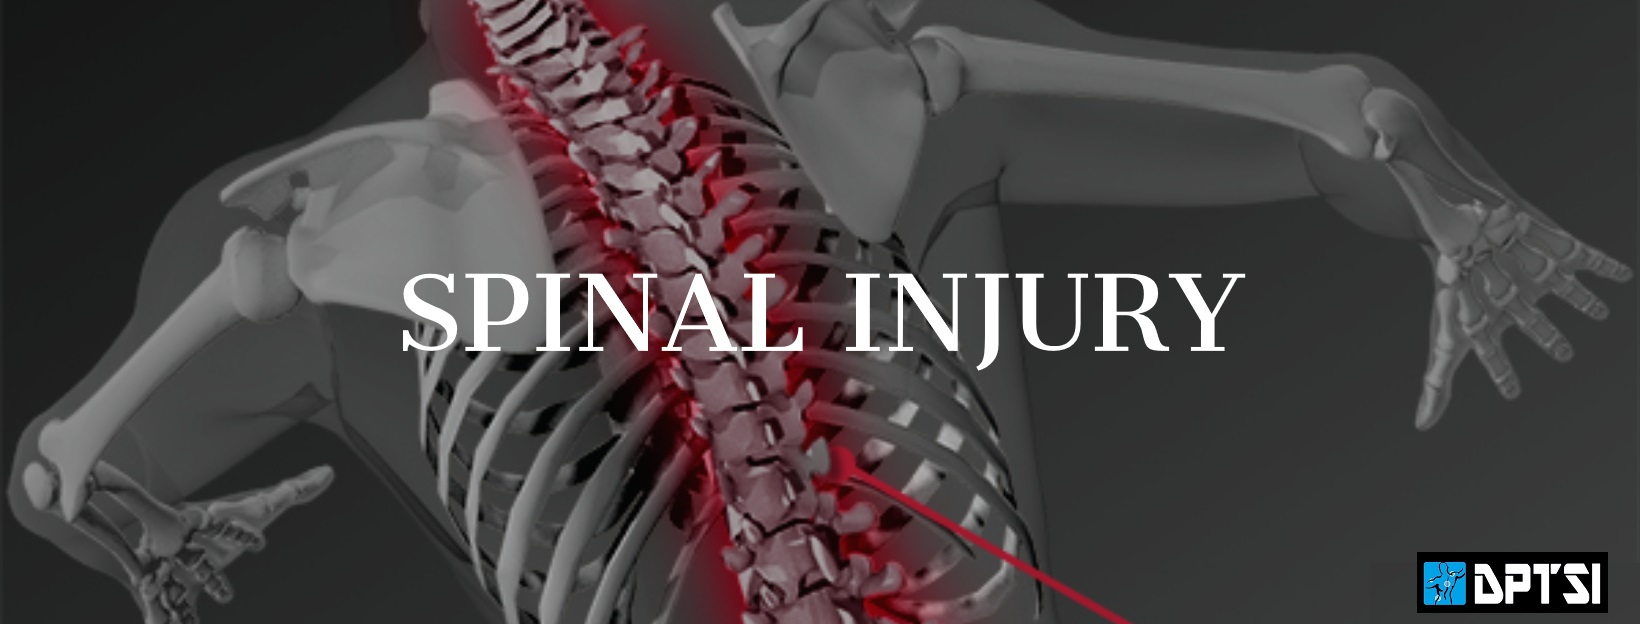 image-752151-Spinal_Injuries_Cover_Photo.jpg